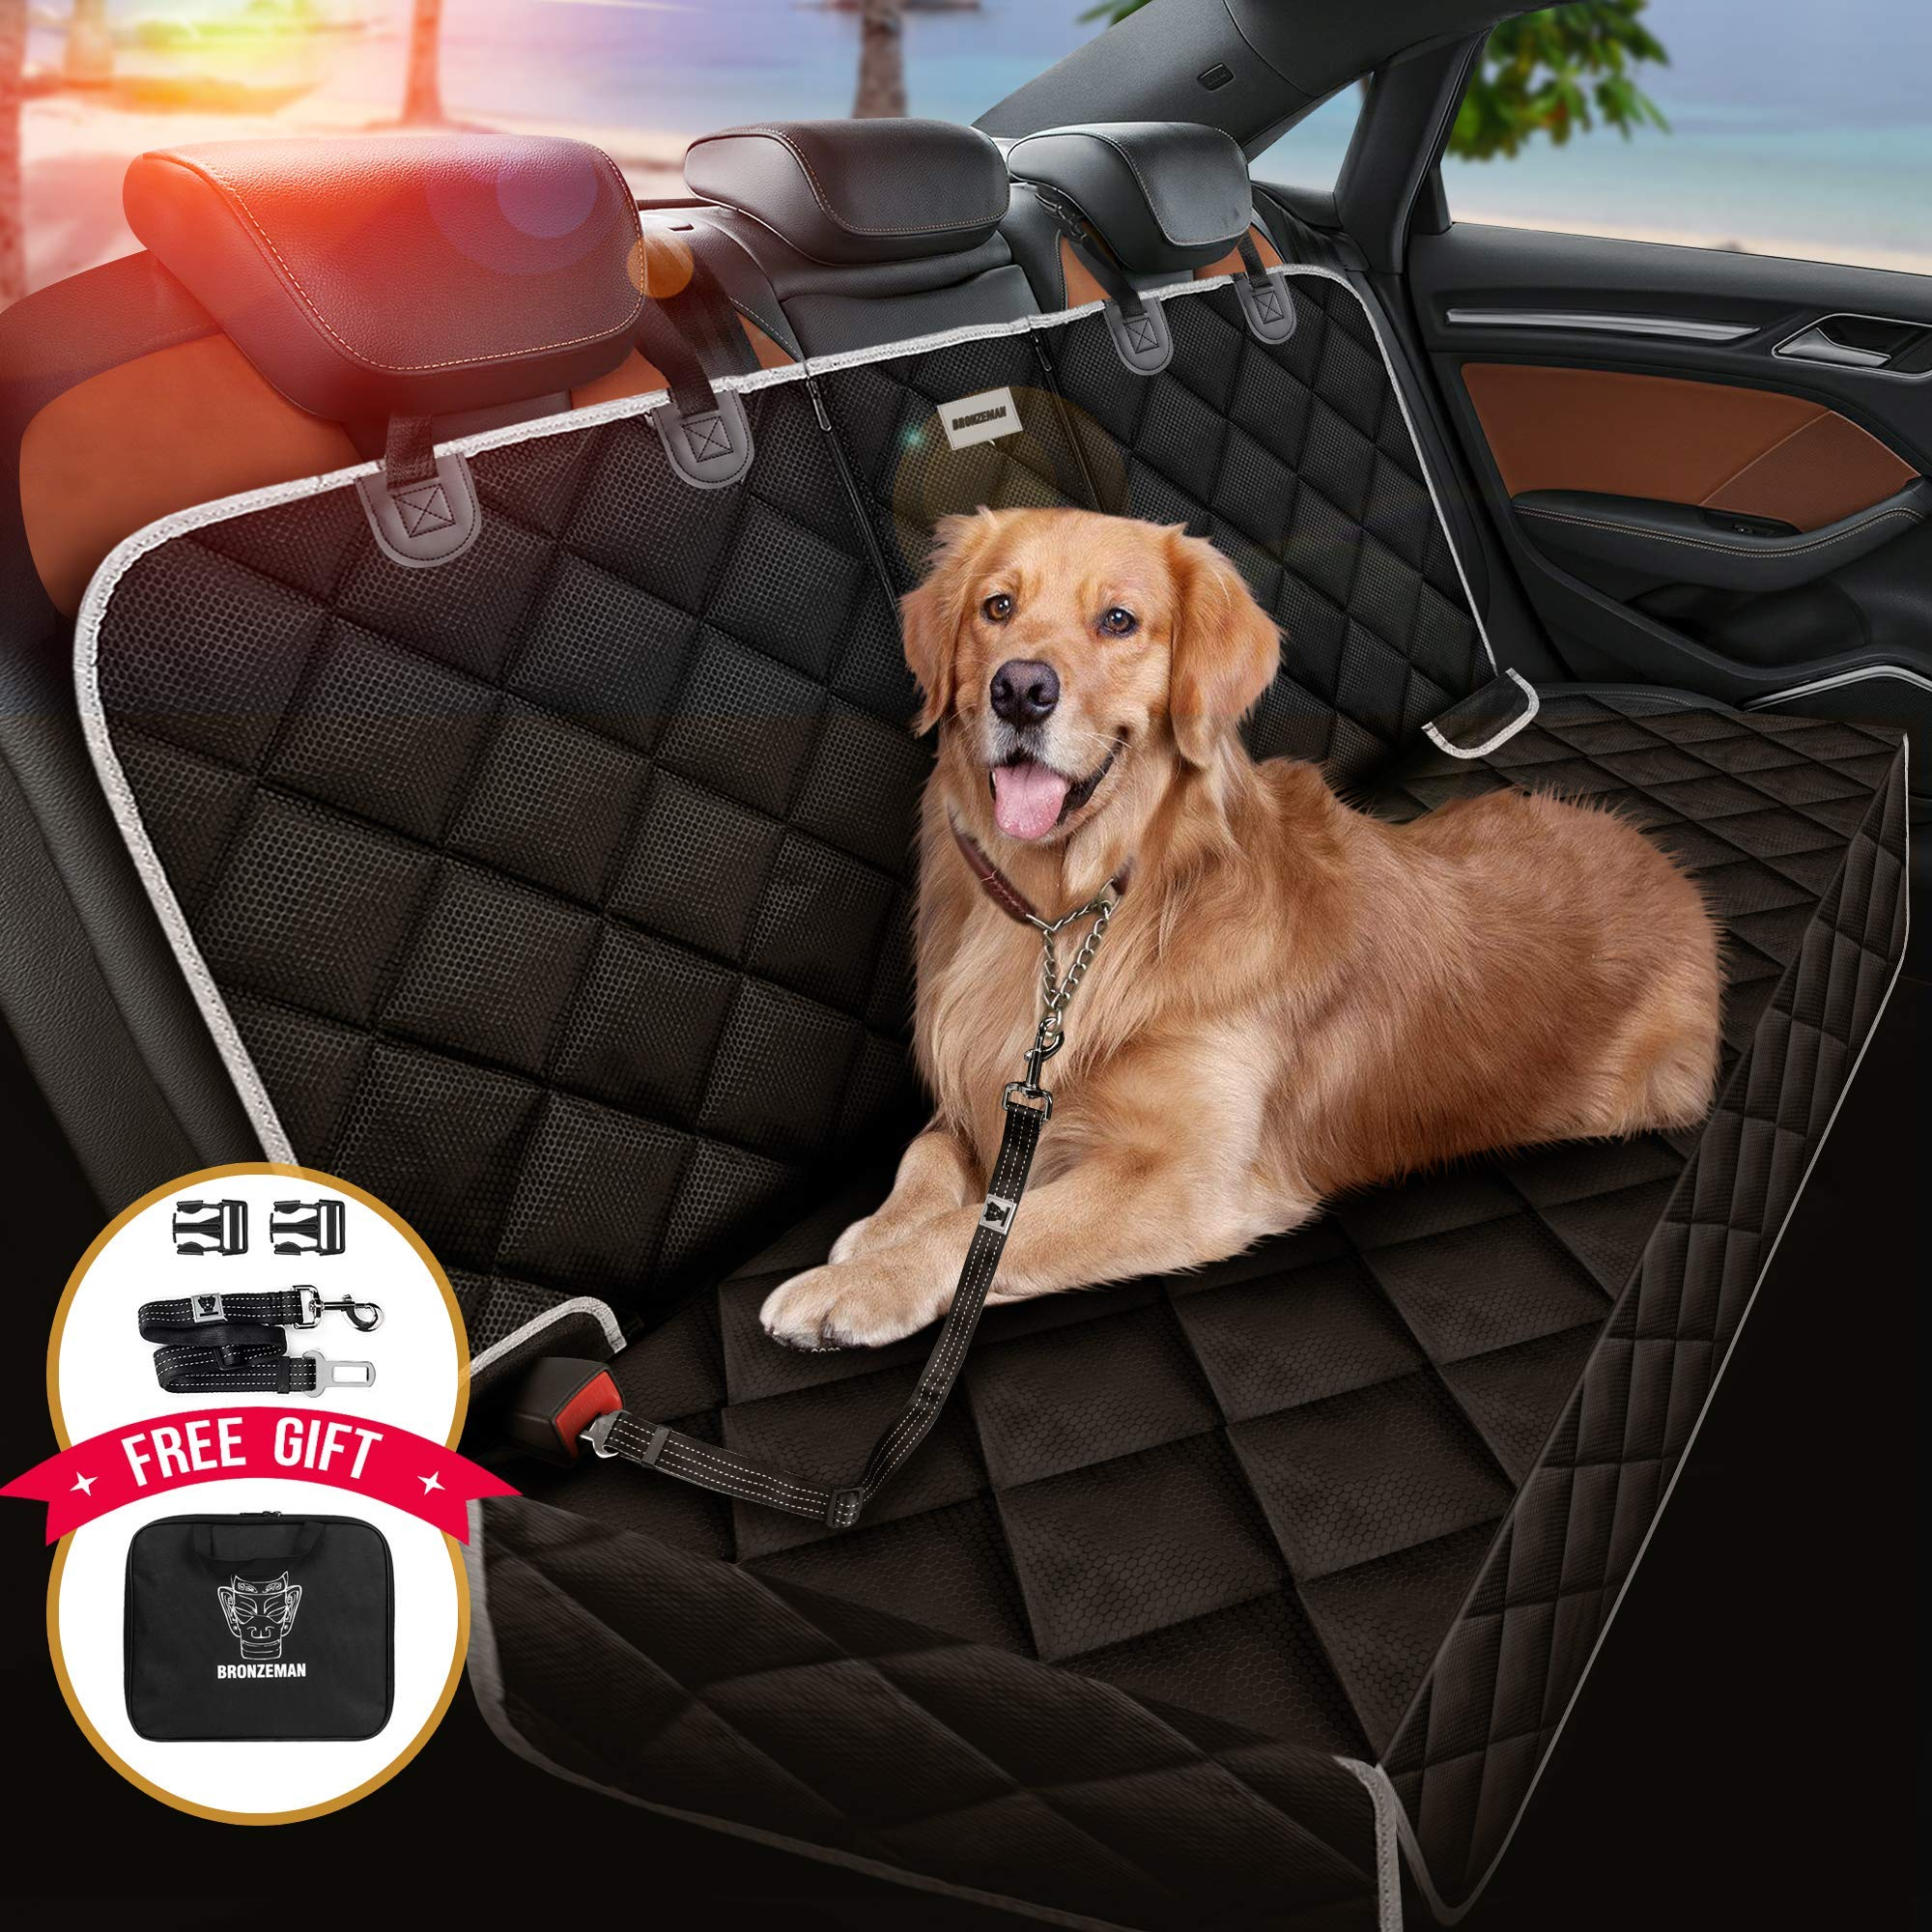 BRONZEMAN Dog Car Seat Cover Football